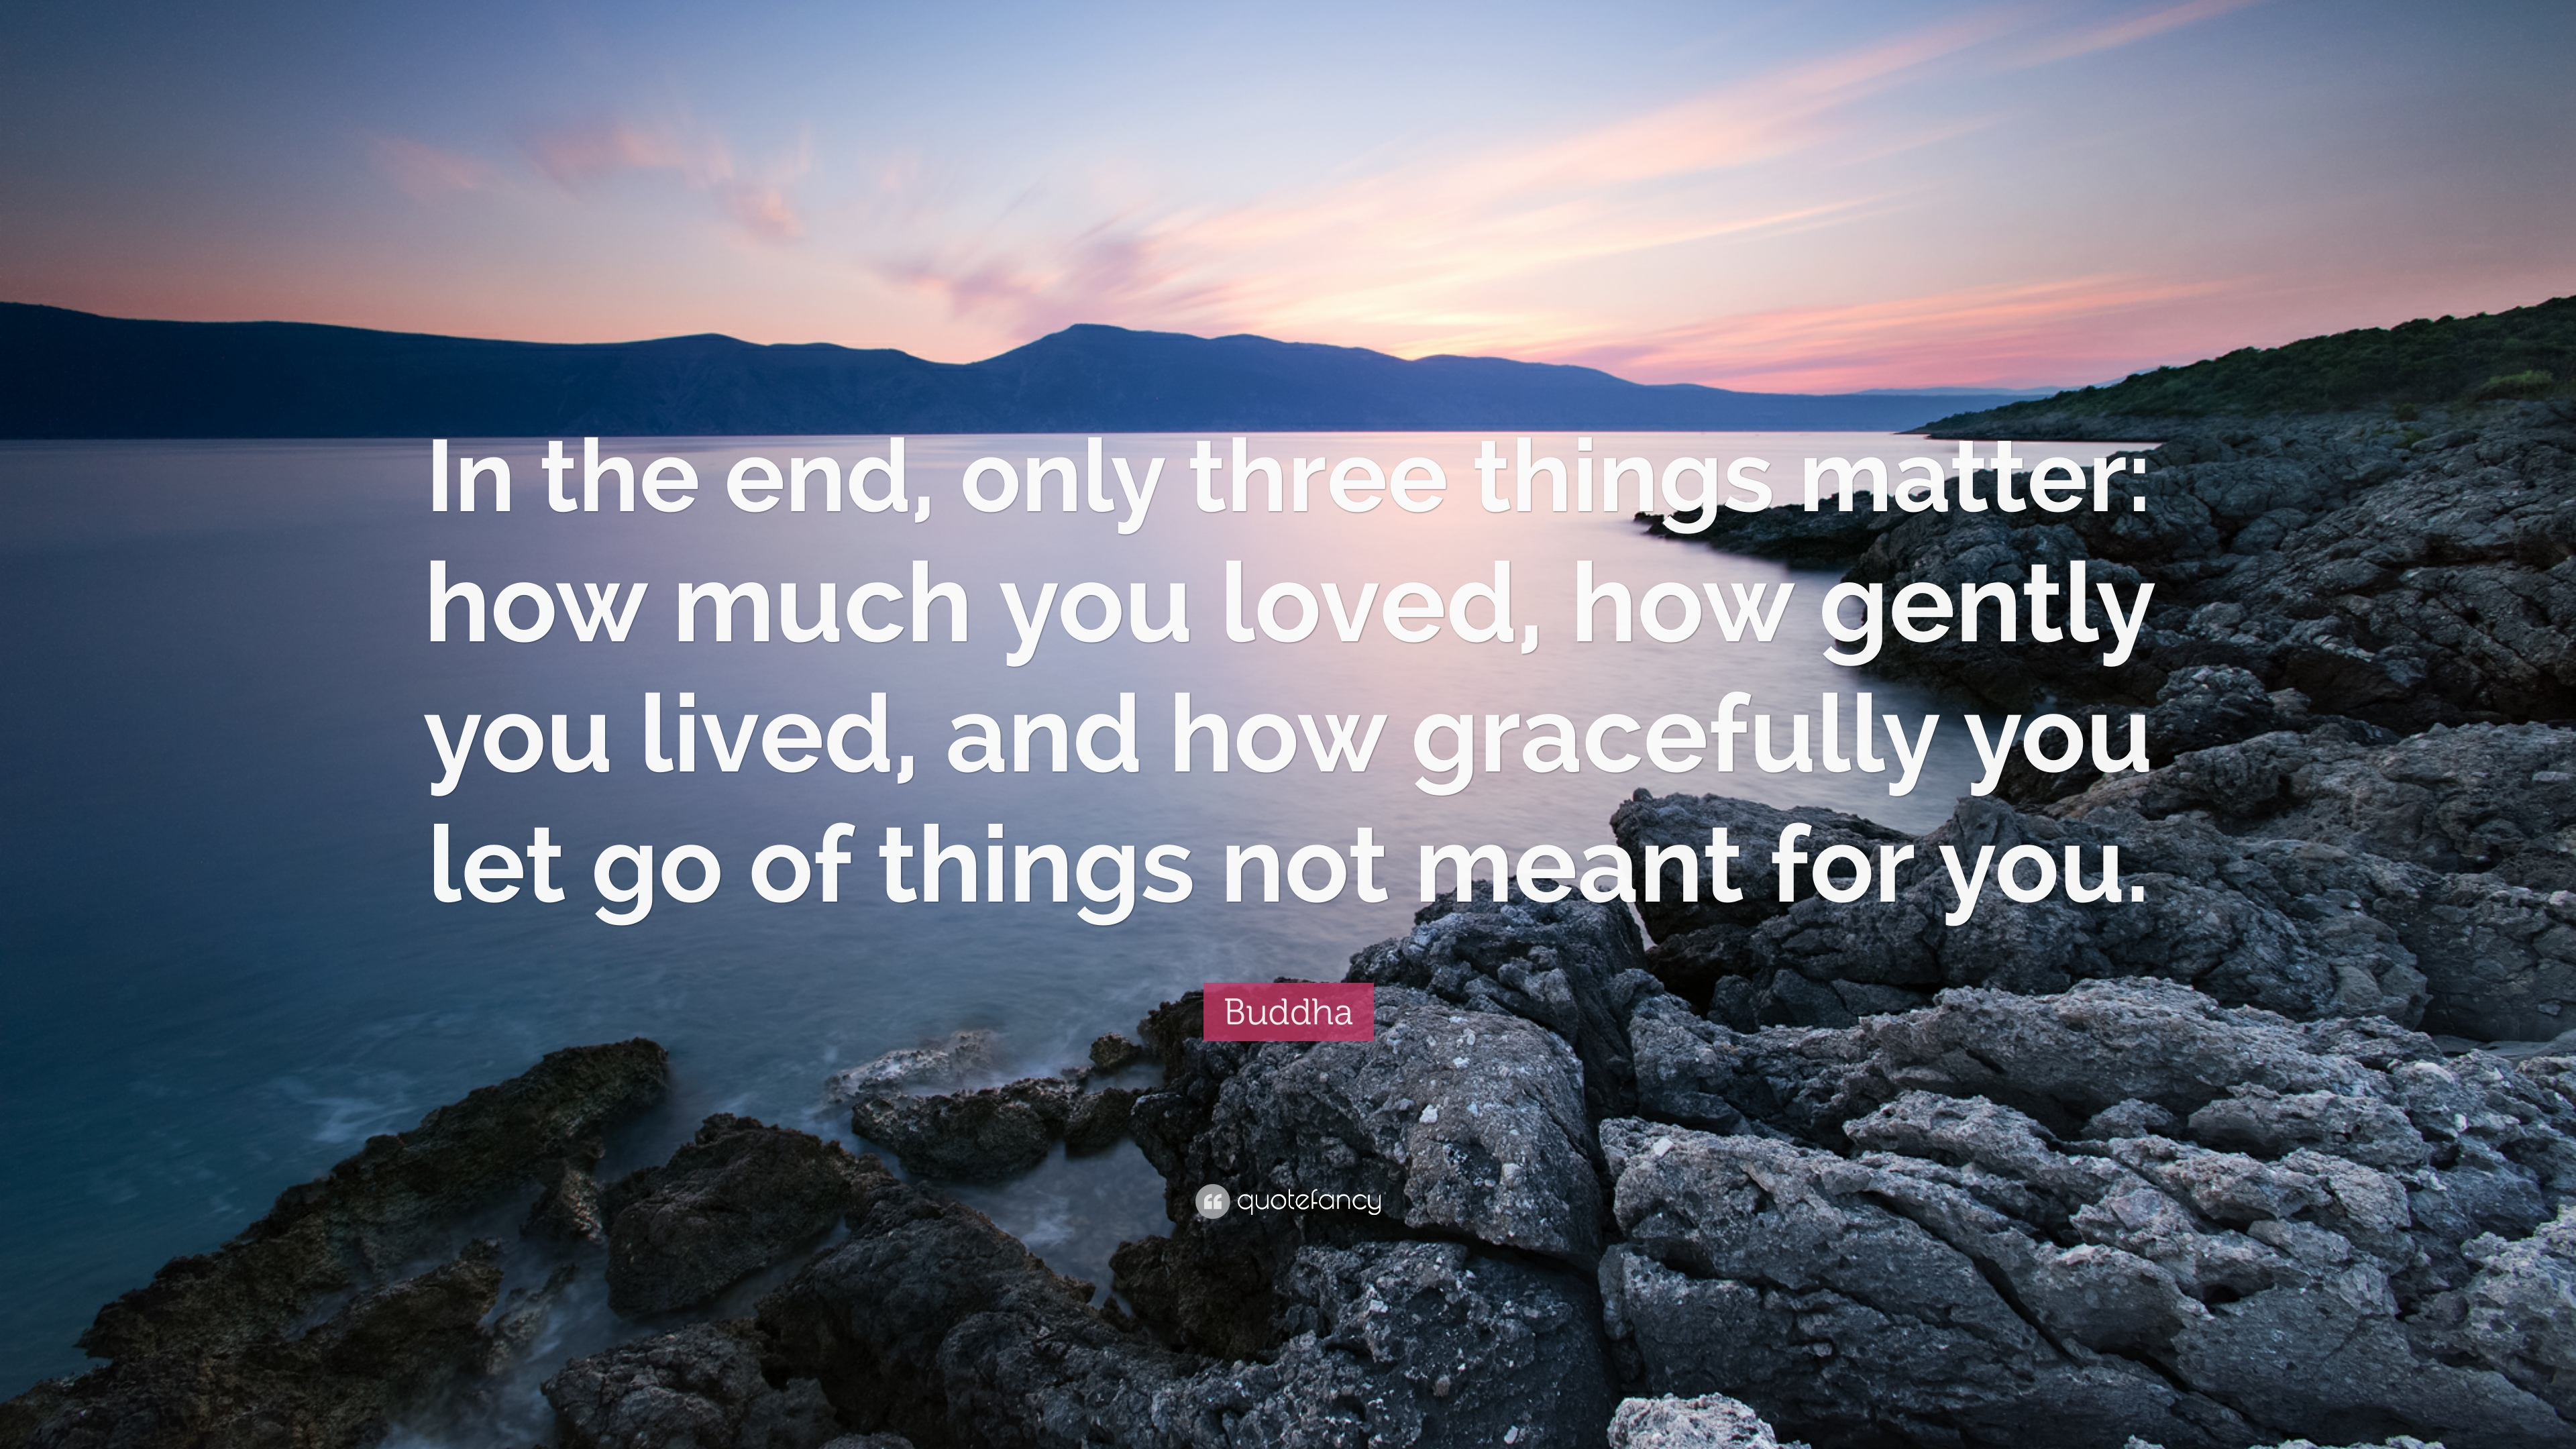 Yoga Quotes In The End Only Three Things Matter How Much You